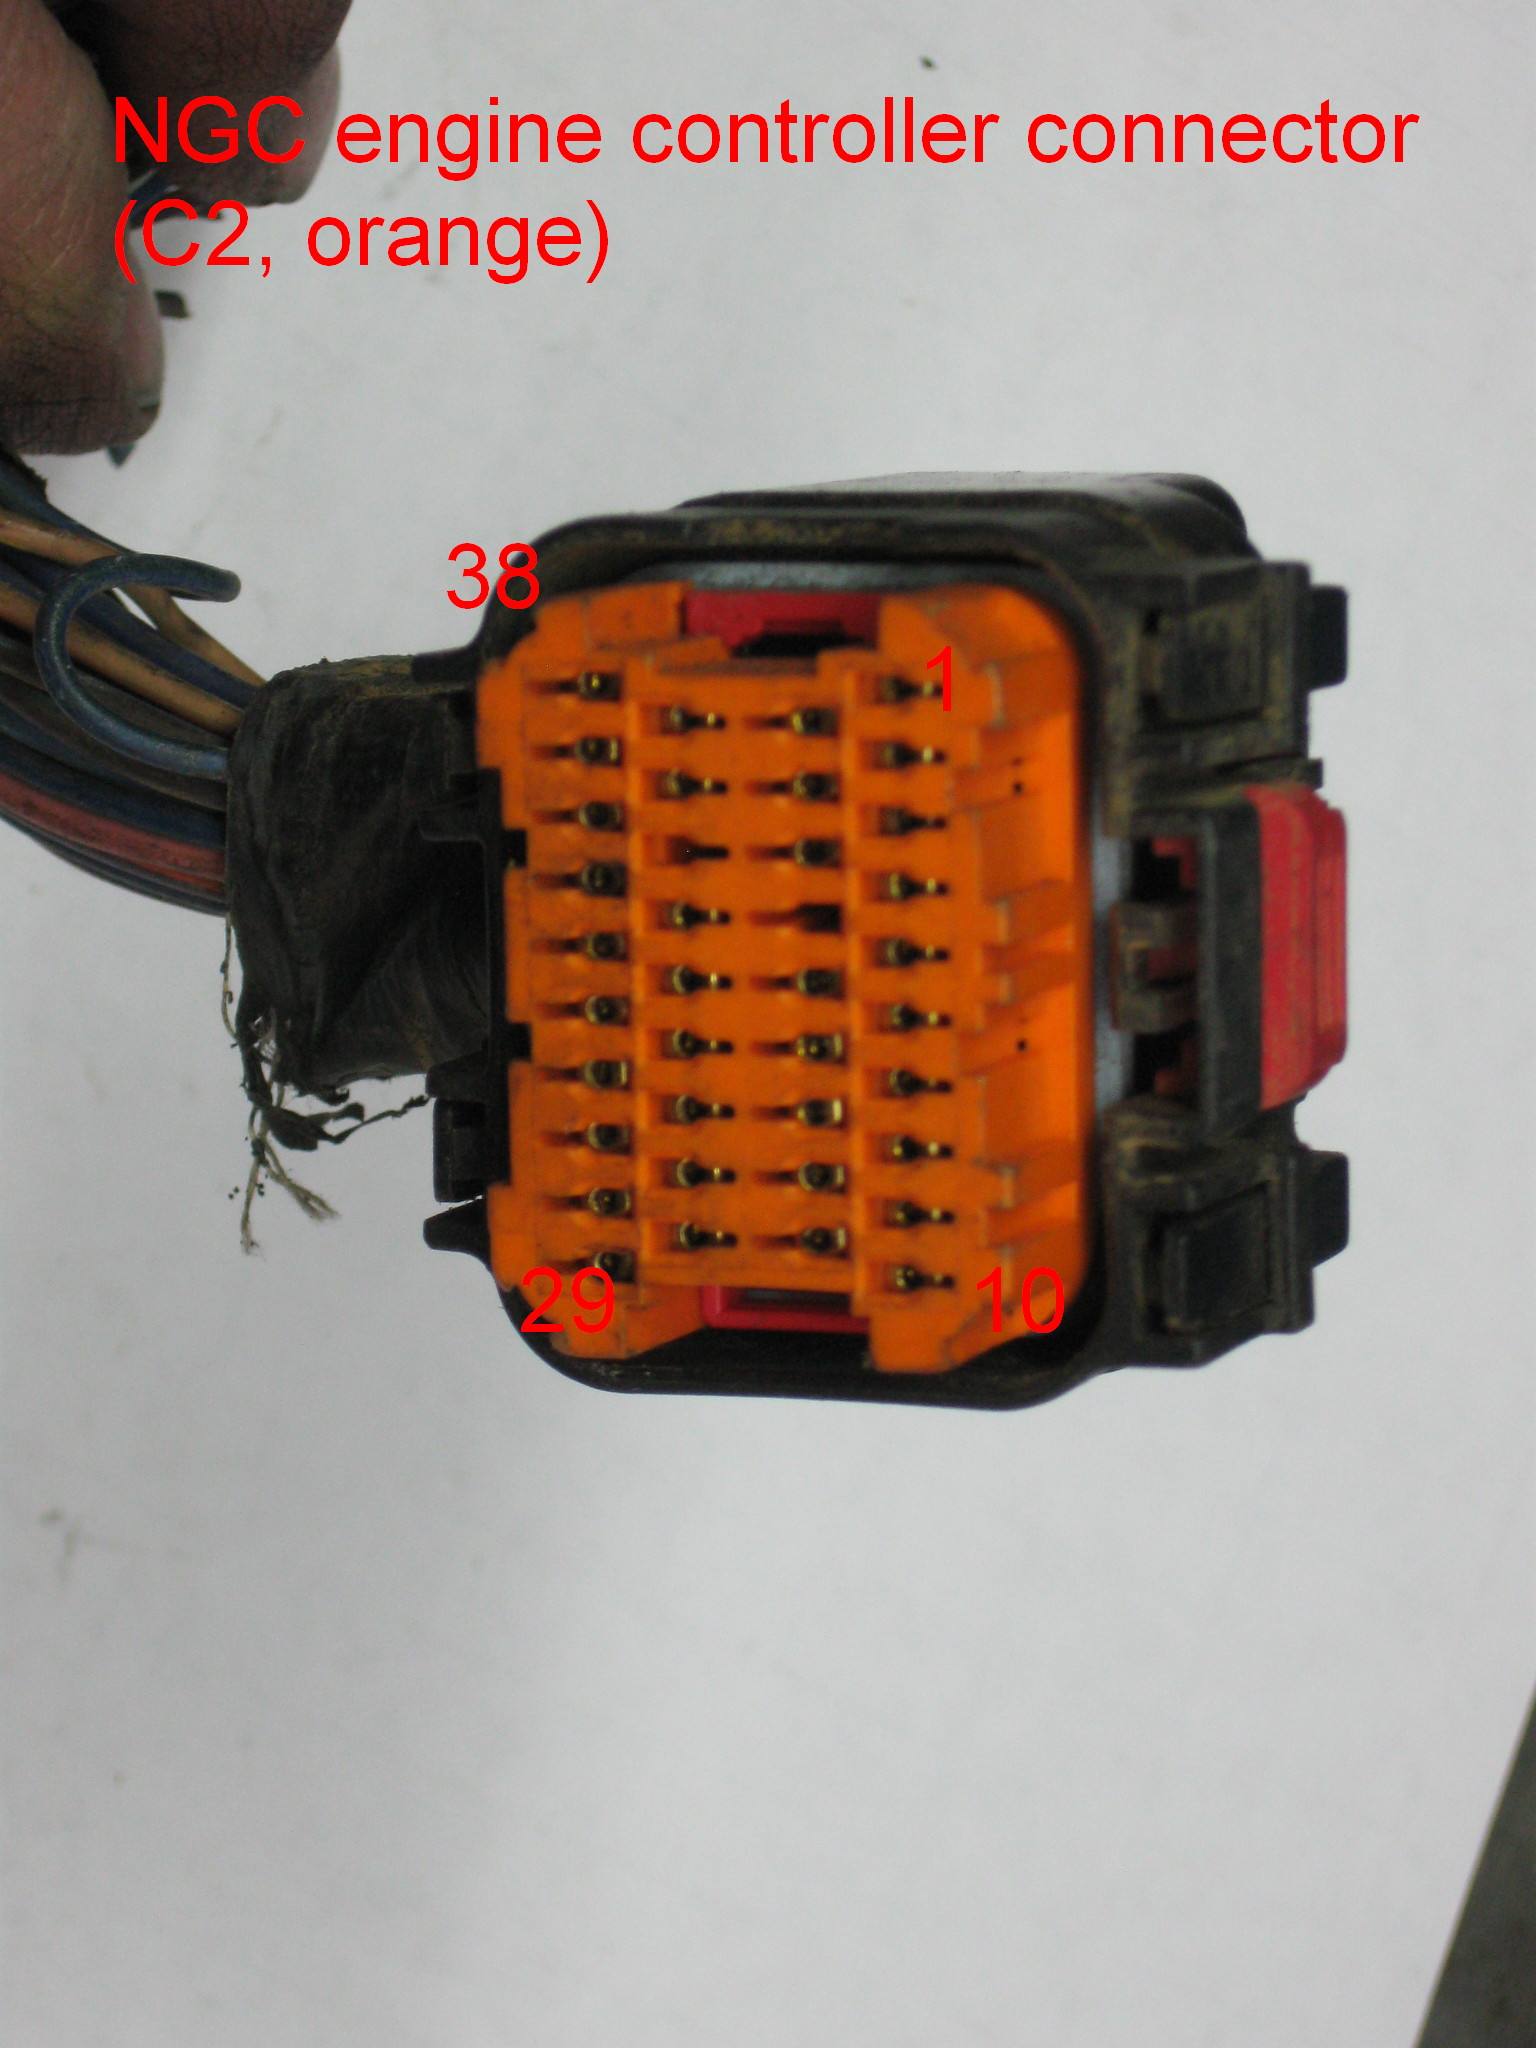 346888 2005 Grand Caravan 3 8l Hose Help likewise 318565 It S Important Help Me in addition 2007 Dodge Charger Stereo Wiring Diagram furthermore File EDV 2 4L Turbo engine likewise 7hy15 Chrysler Pacifica Touring 2006 Chrysler Pacifica Low Bat. on 2004 dodge neon engine diagram